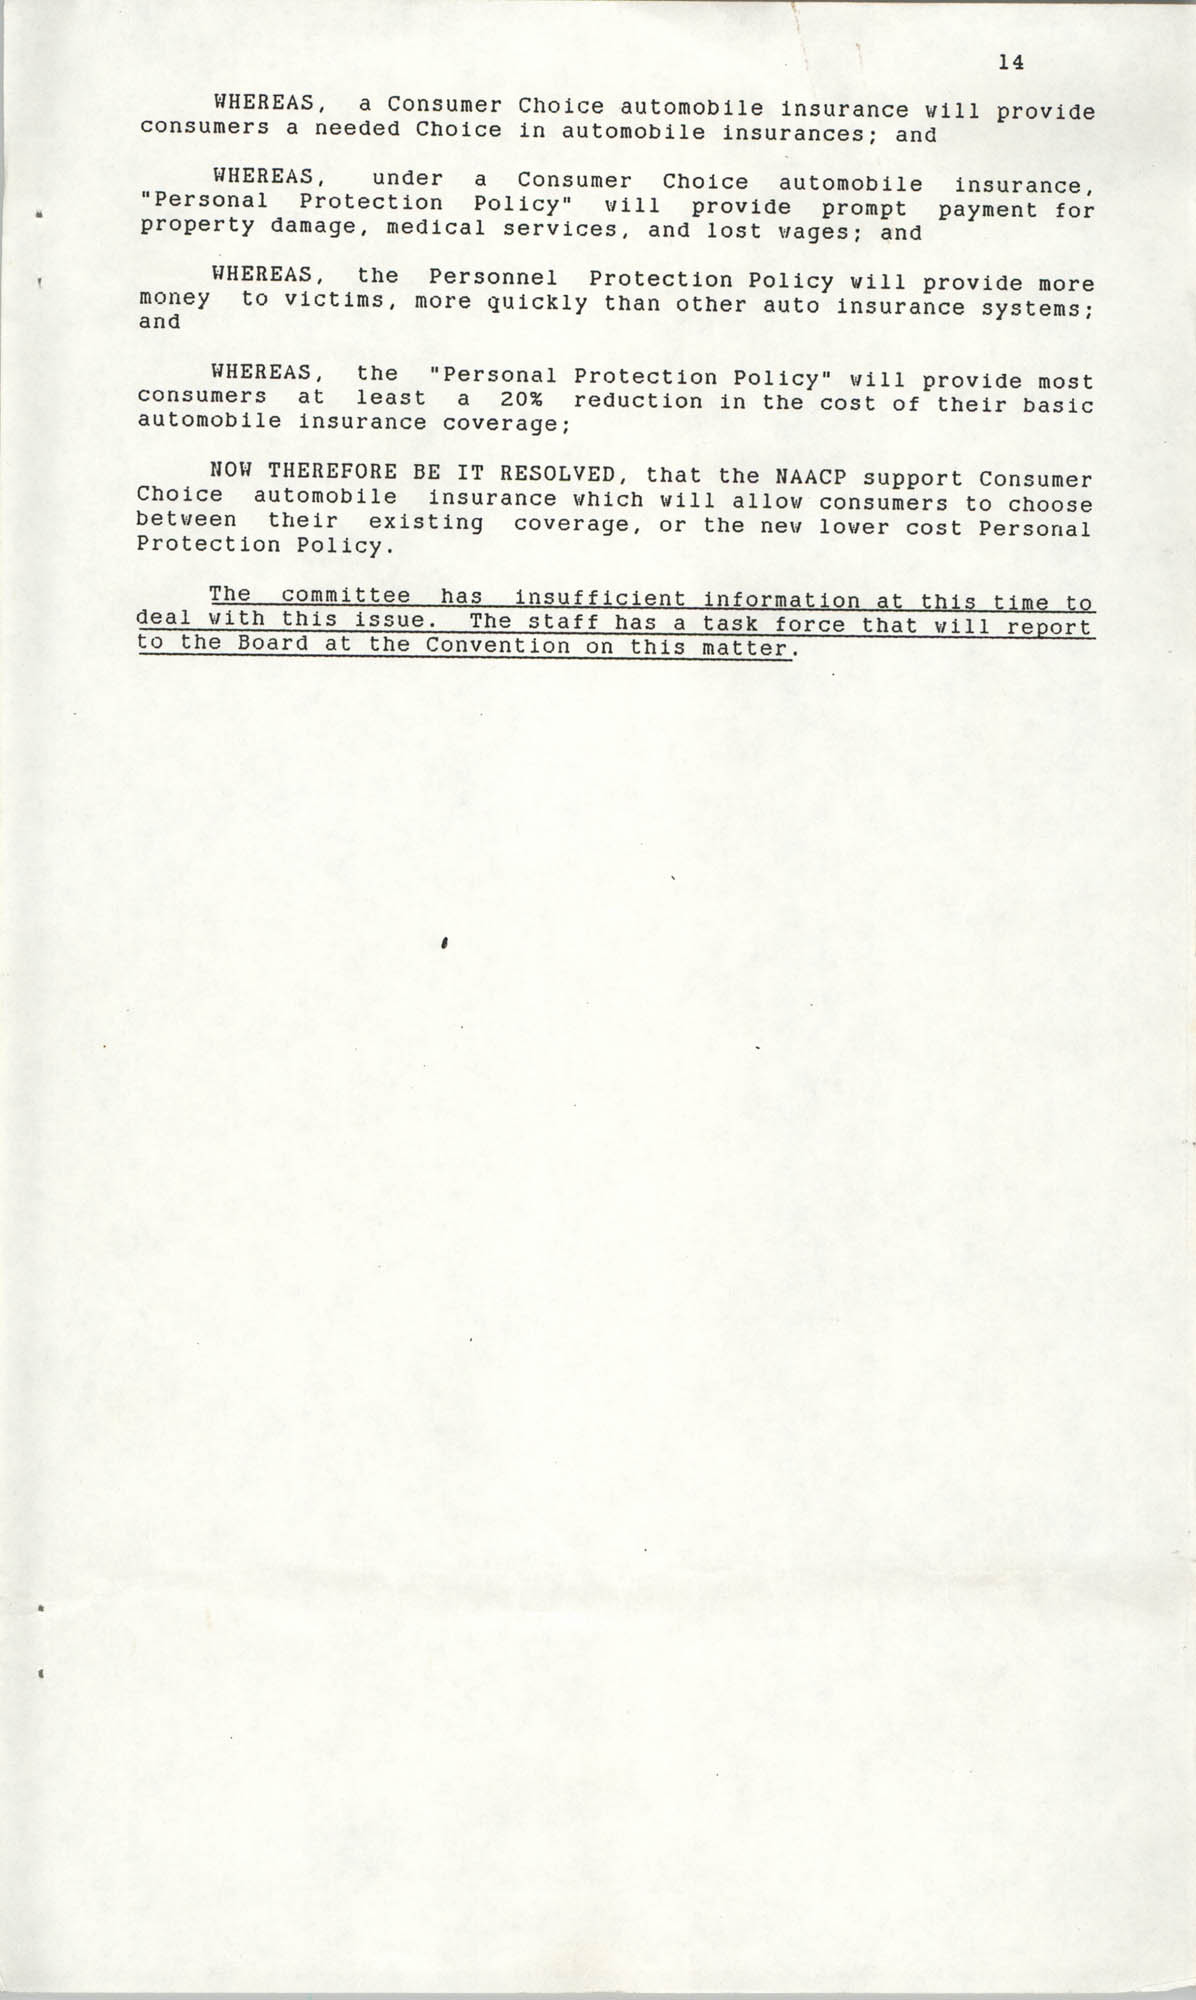 Resolutions Submitted Under Article X, Section 2 of the Constitution of the NAACP, 1990, Page 14